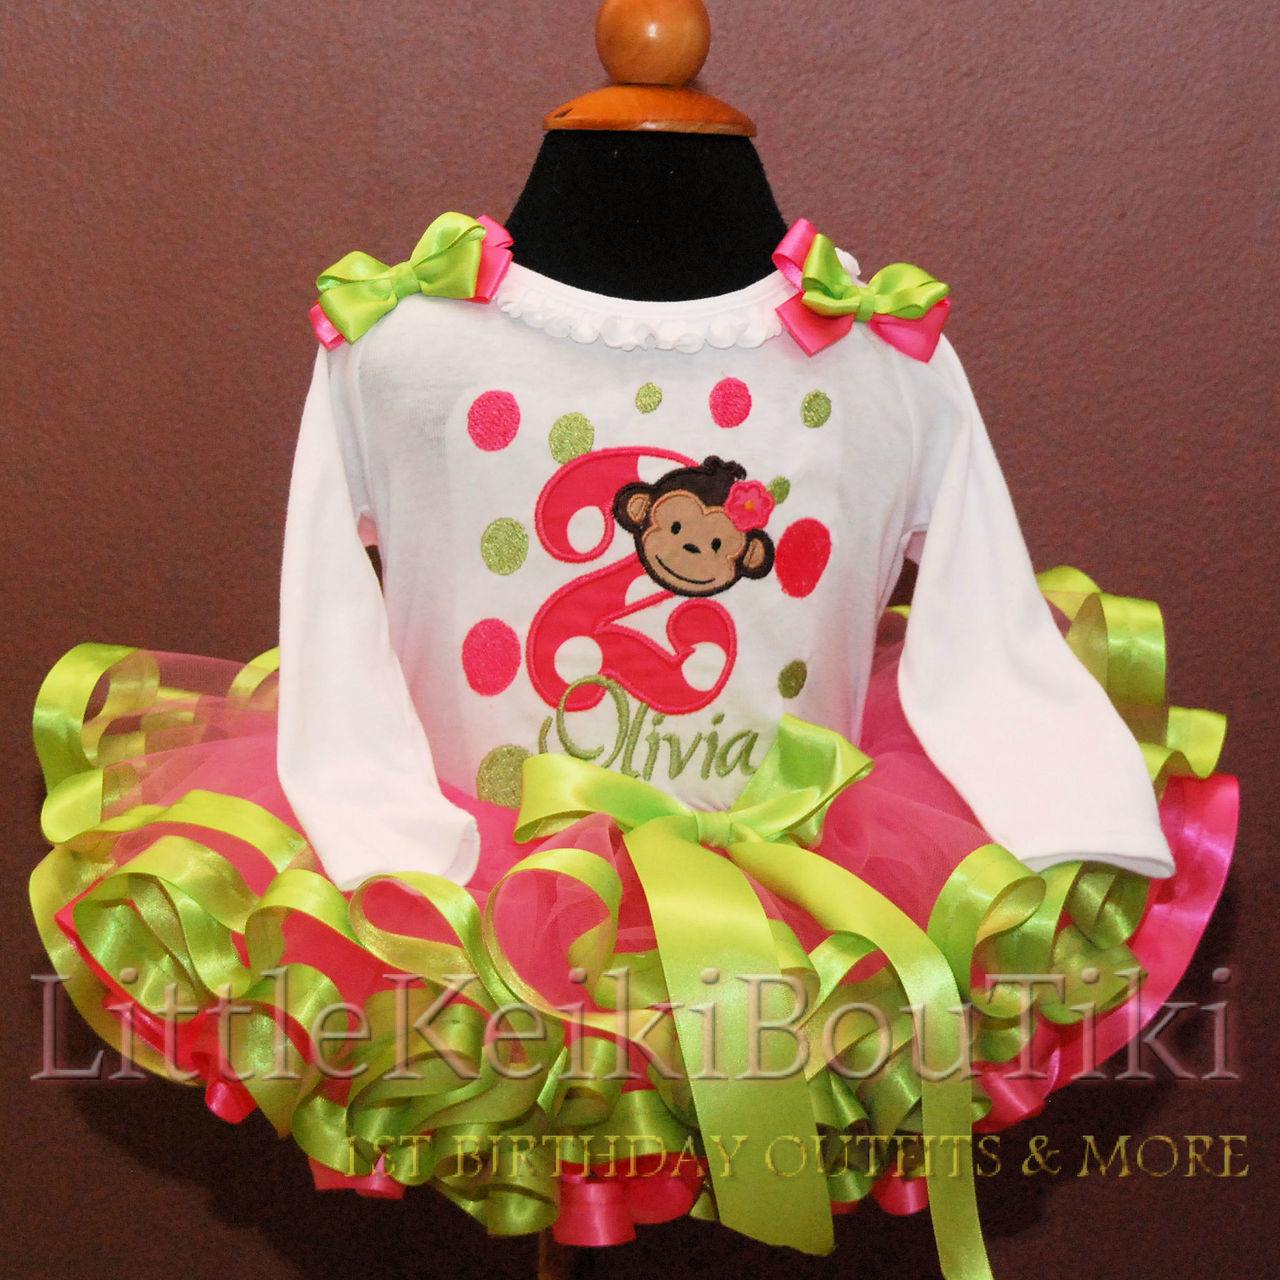 2nd Birthday outfit girl, mod monkey outfit pink and green